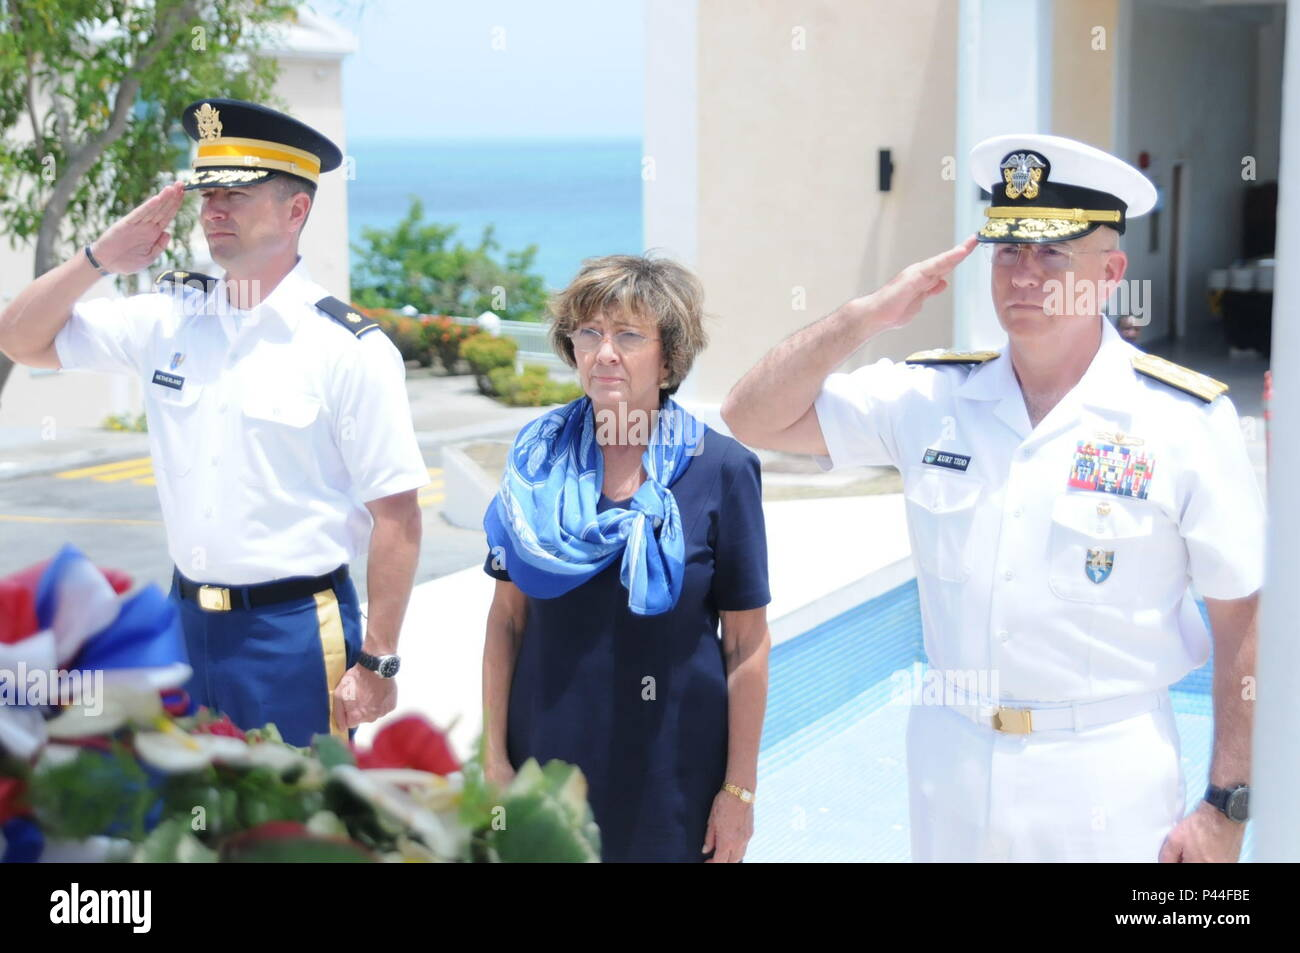 Adm. Kurt W. Tidd (far right), commander of U.S. Southern Command, Linda S. Taglialatela, Chief of the U.S. Mission to Barbados, the Eastern Caribbean and the OECS, and Maj. Louis Netherland, the operations officer at United States liaison office in Barbados and Eastern Caribbean, salute a monument on the campus of St. George's University in Grenada, June 14, 2016. The monument memorializes the U.S. servicemen killed during Operation Urgent Fury in 1983. The event took place after the closing ceremony of Tradewinds 2016. U.S. Army photo by Sgt. Jason Drager. - Stock Image